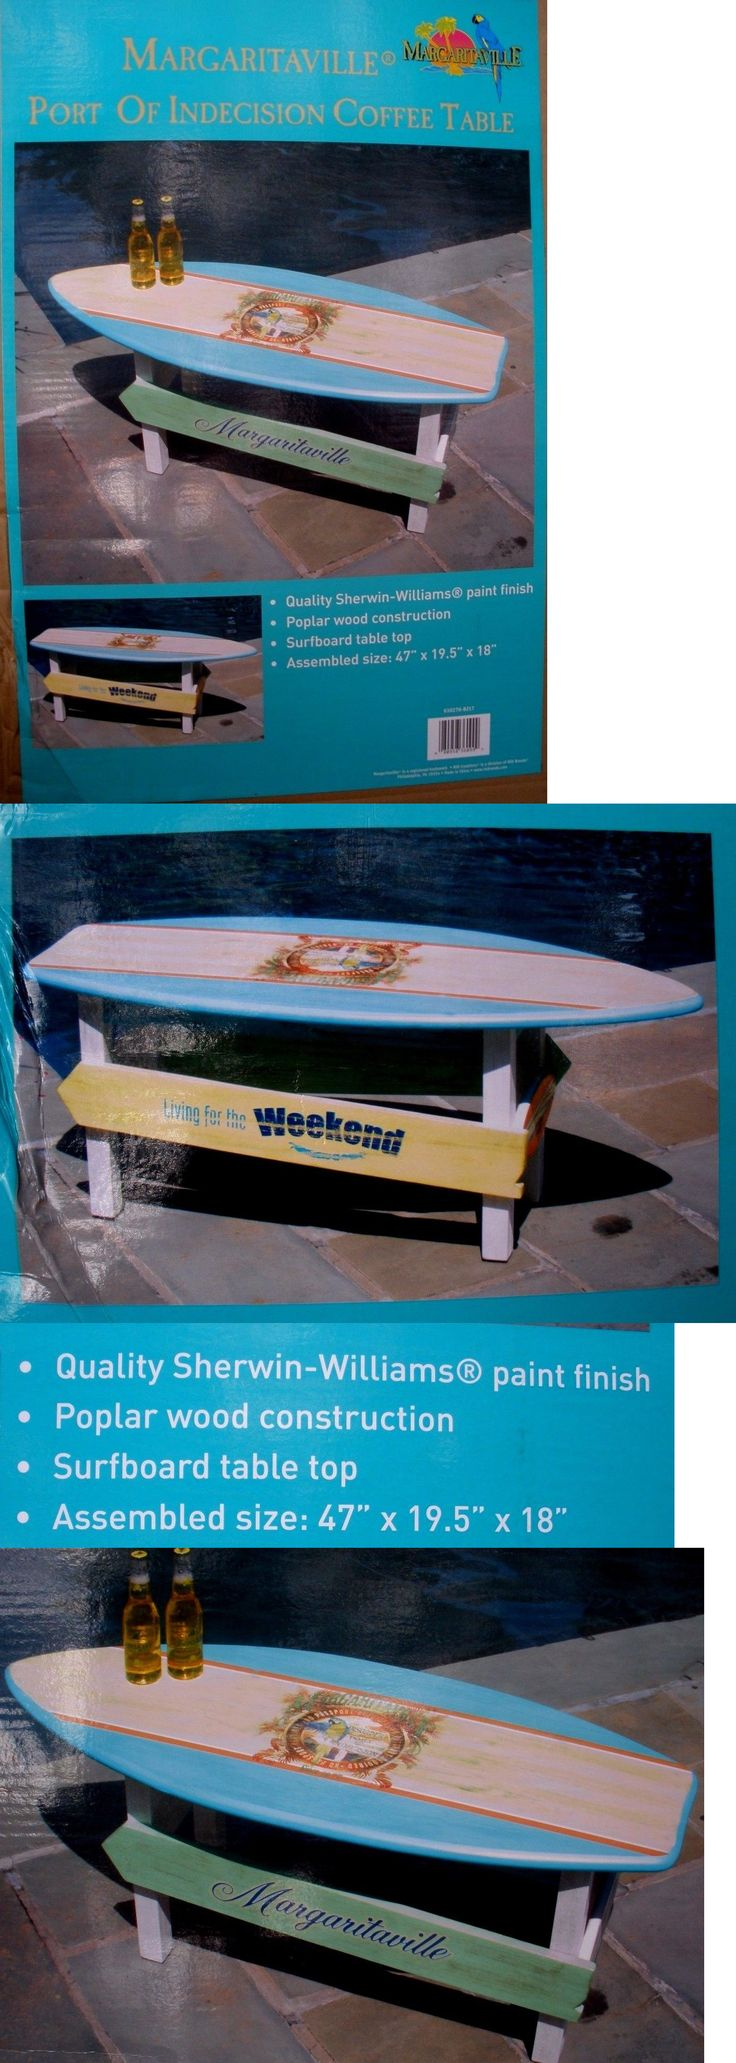 Tables 112590: Margaritaville Outdoor Surfboard Coffee Table Plus Free Gift -> BUY IT NOW ONLY: $199.95 on eBay!